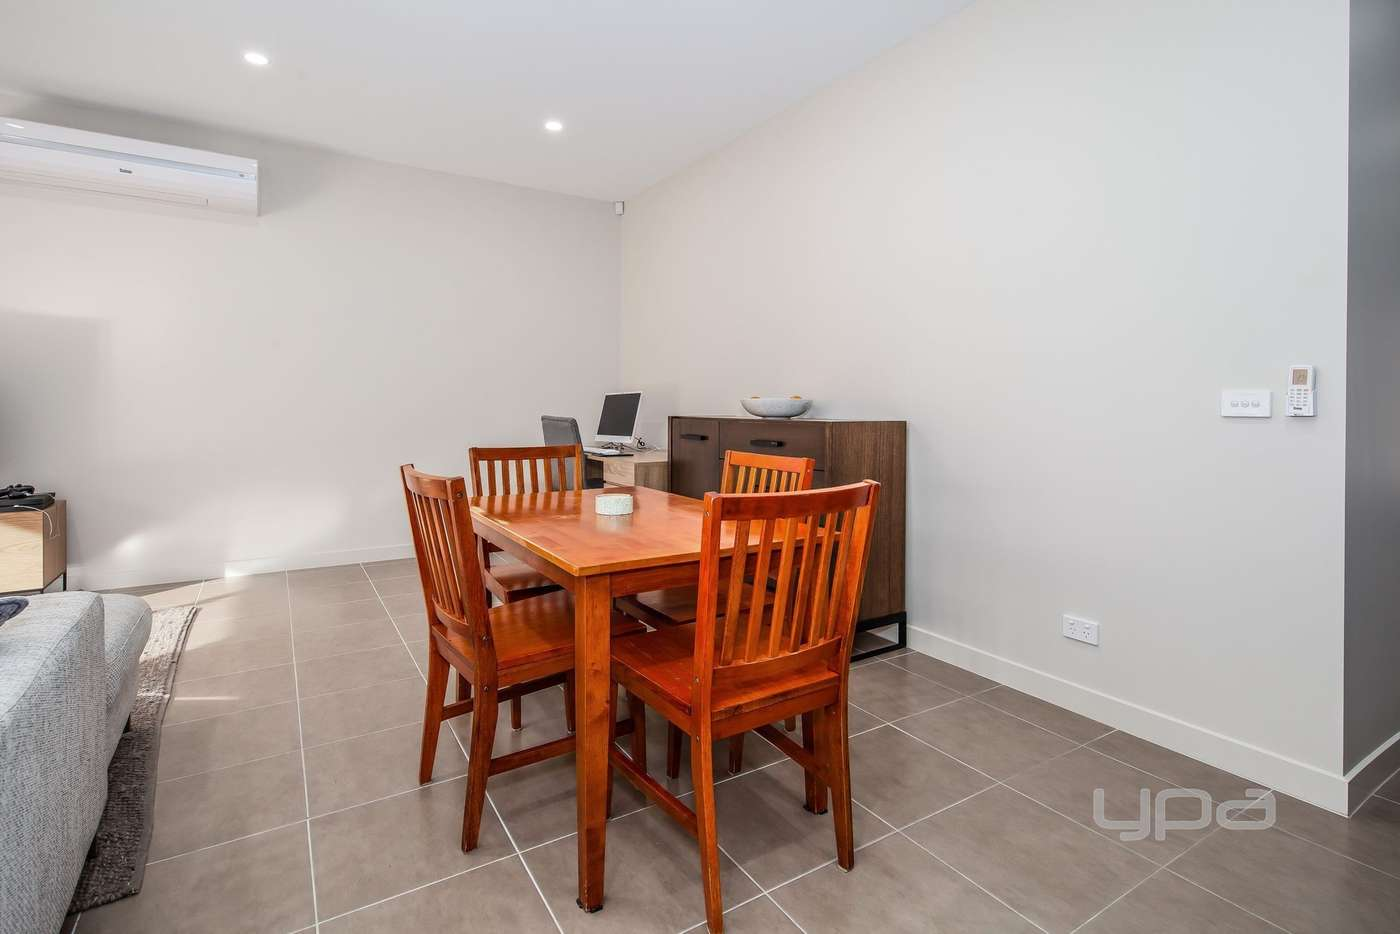 Sixth view of Homely house listing, 7/3 Stratheden Court, Sydenham VIC 3037